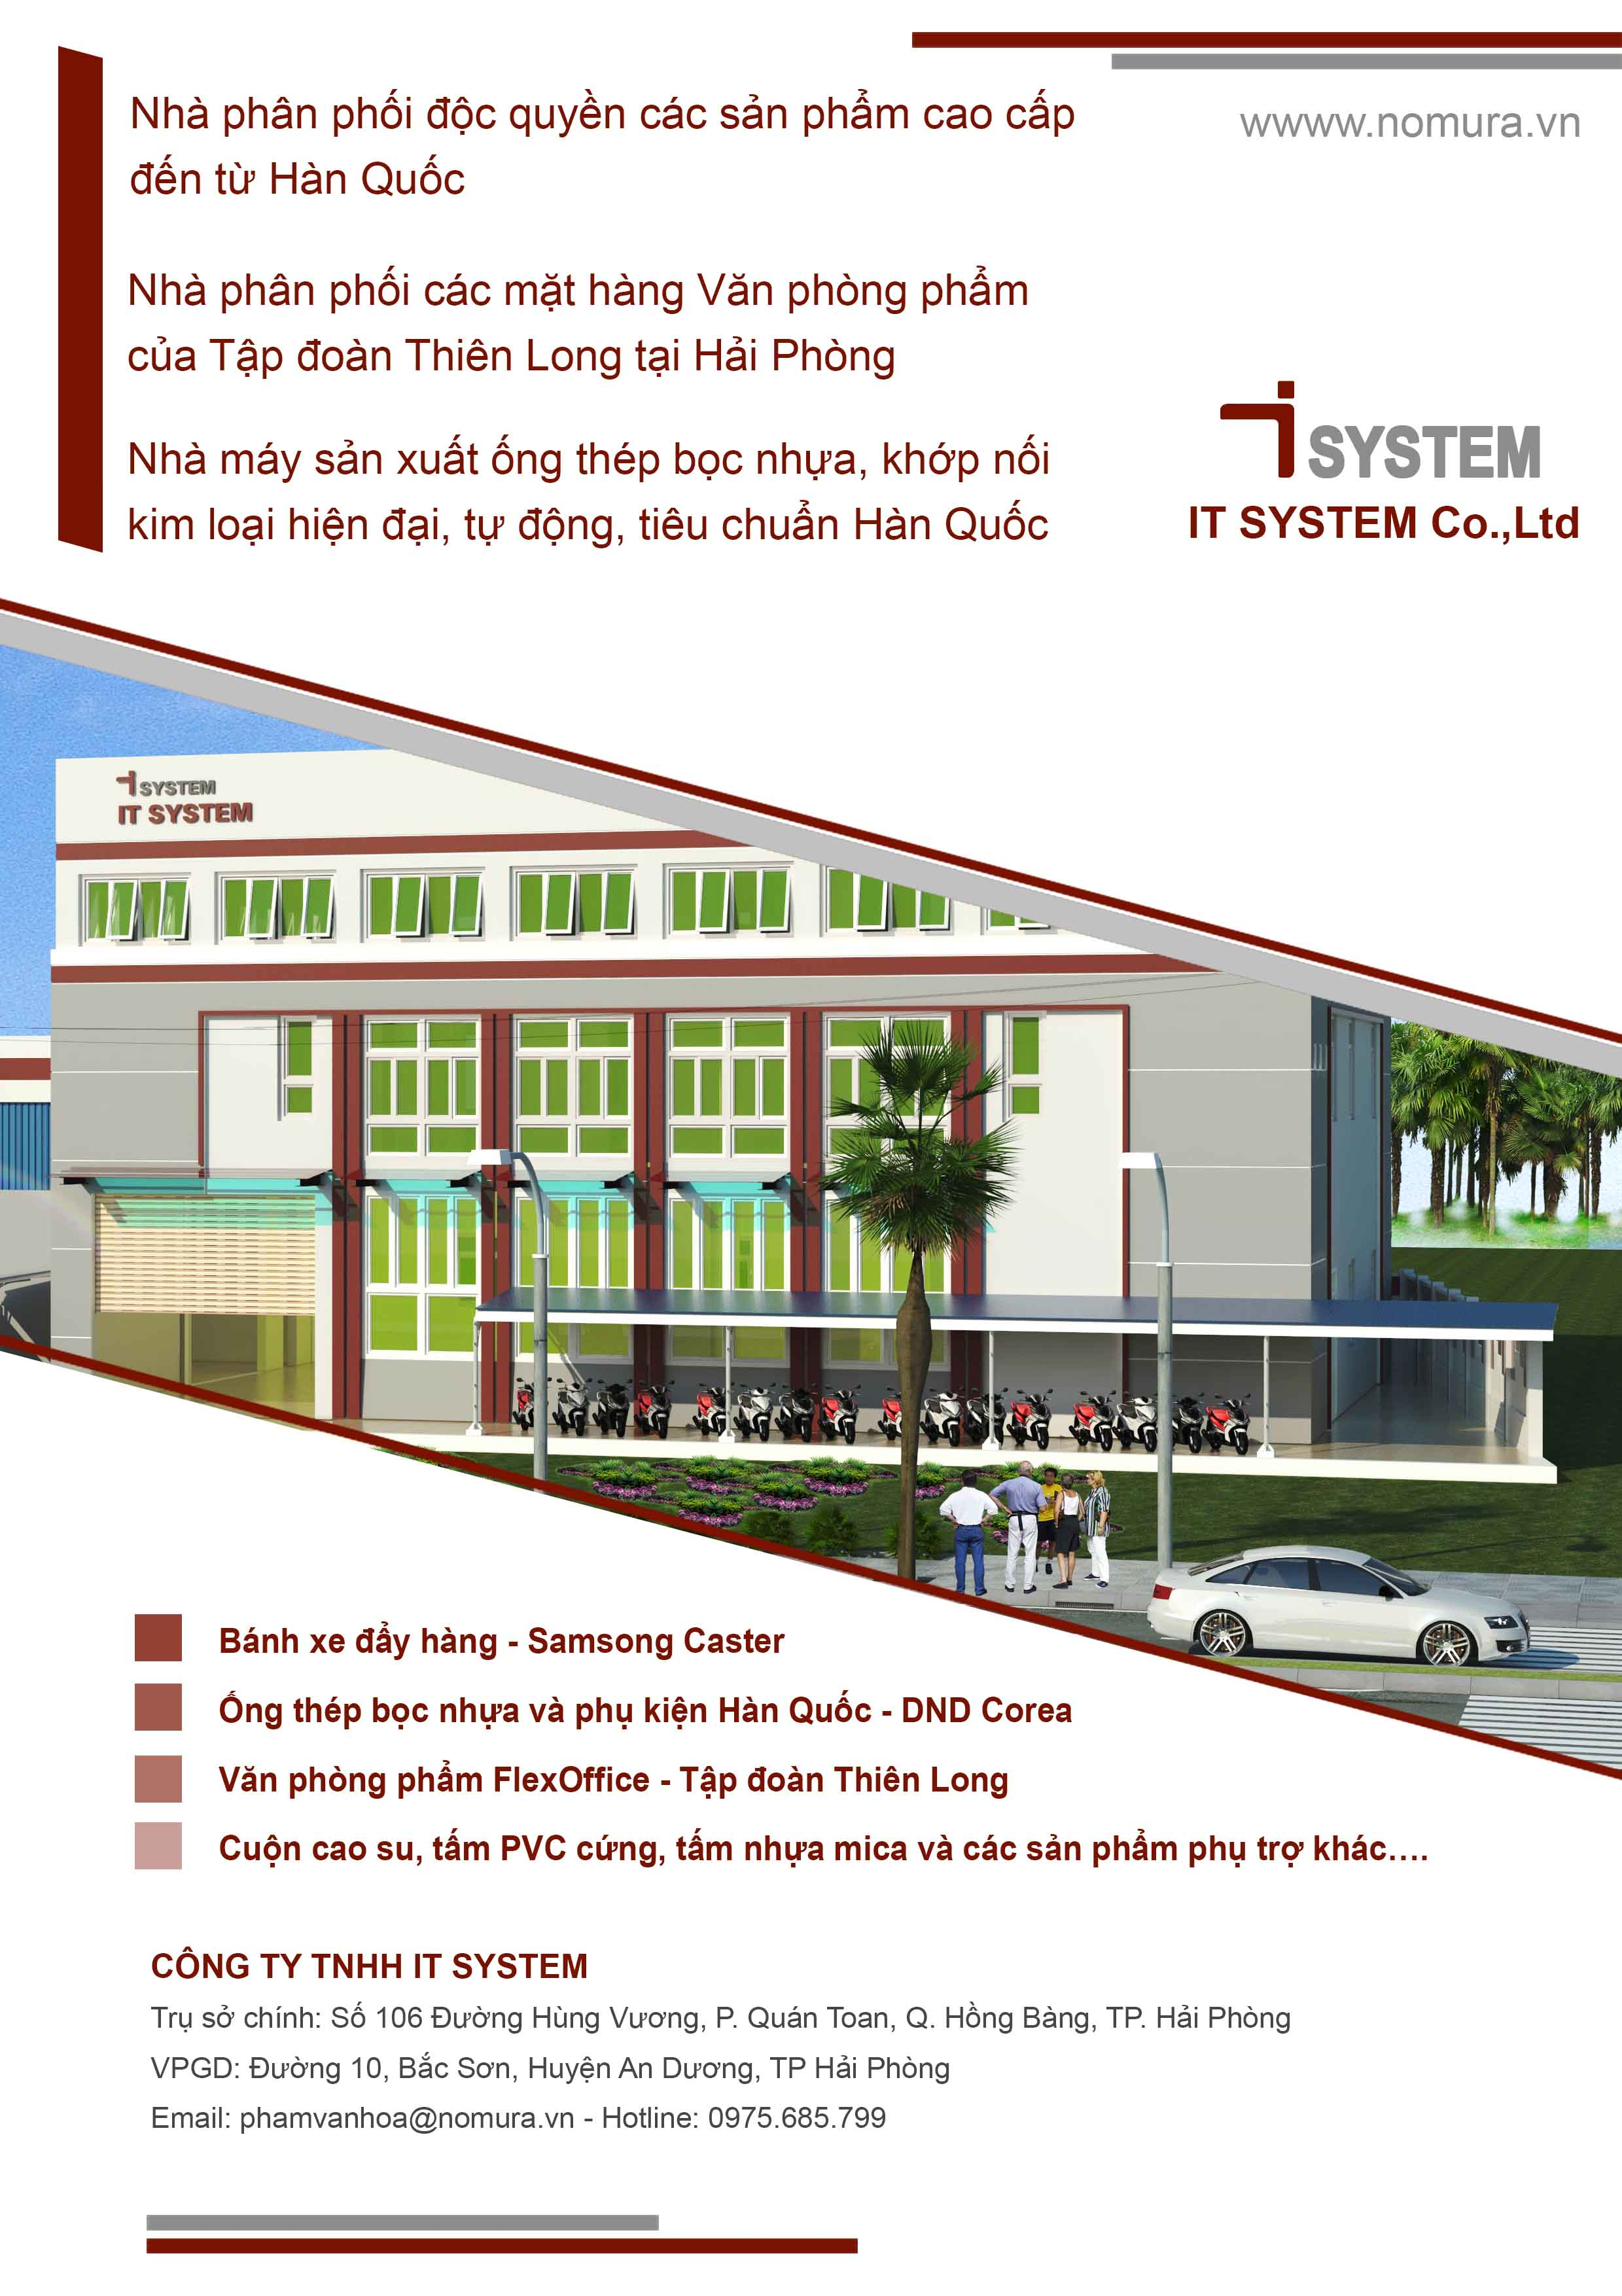 Công ty TNHH IT System - Profile Company